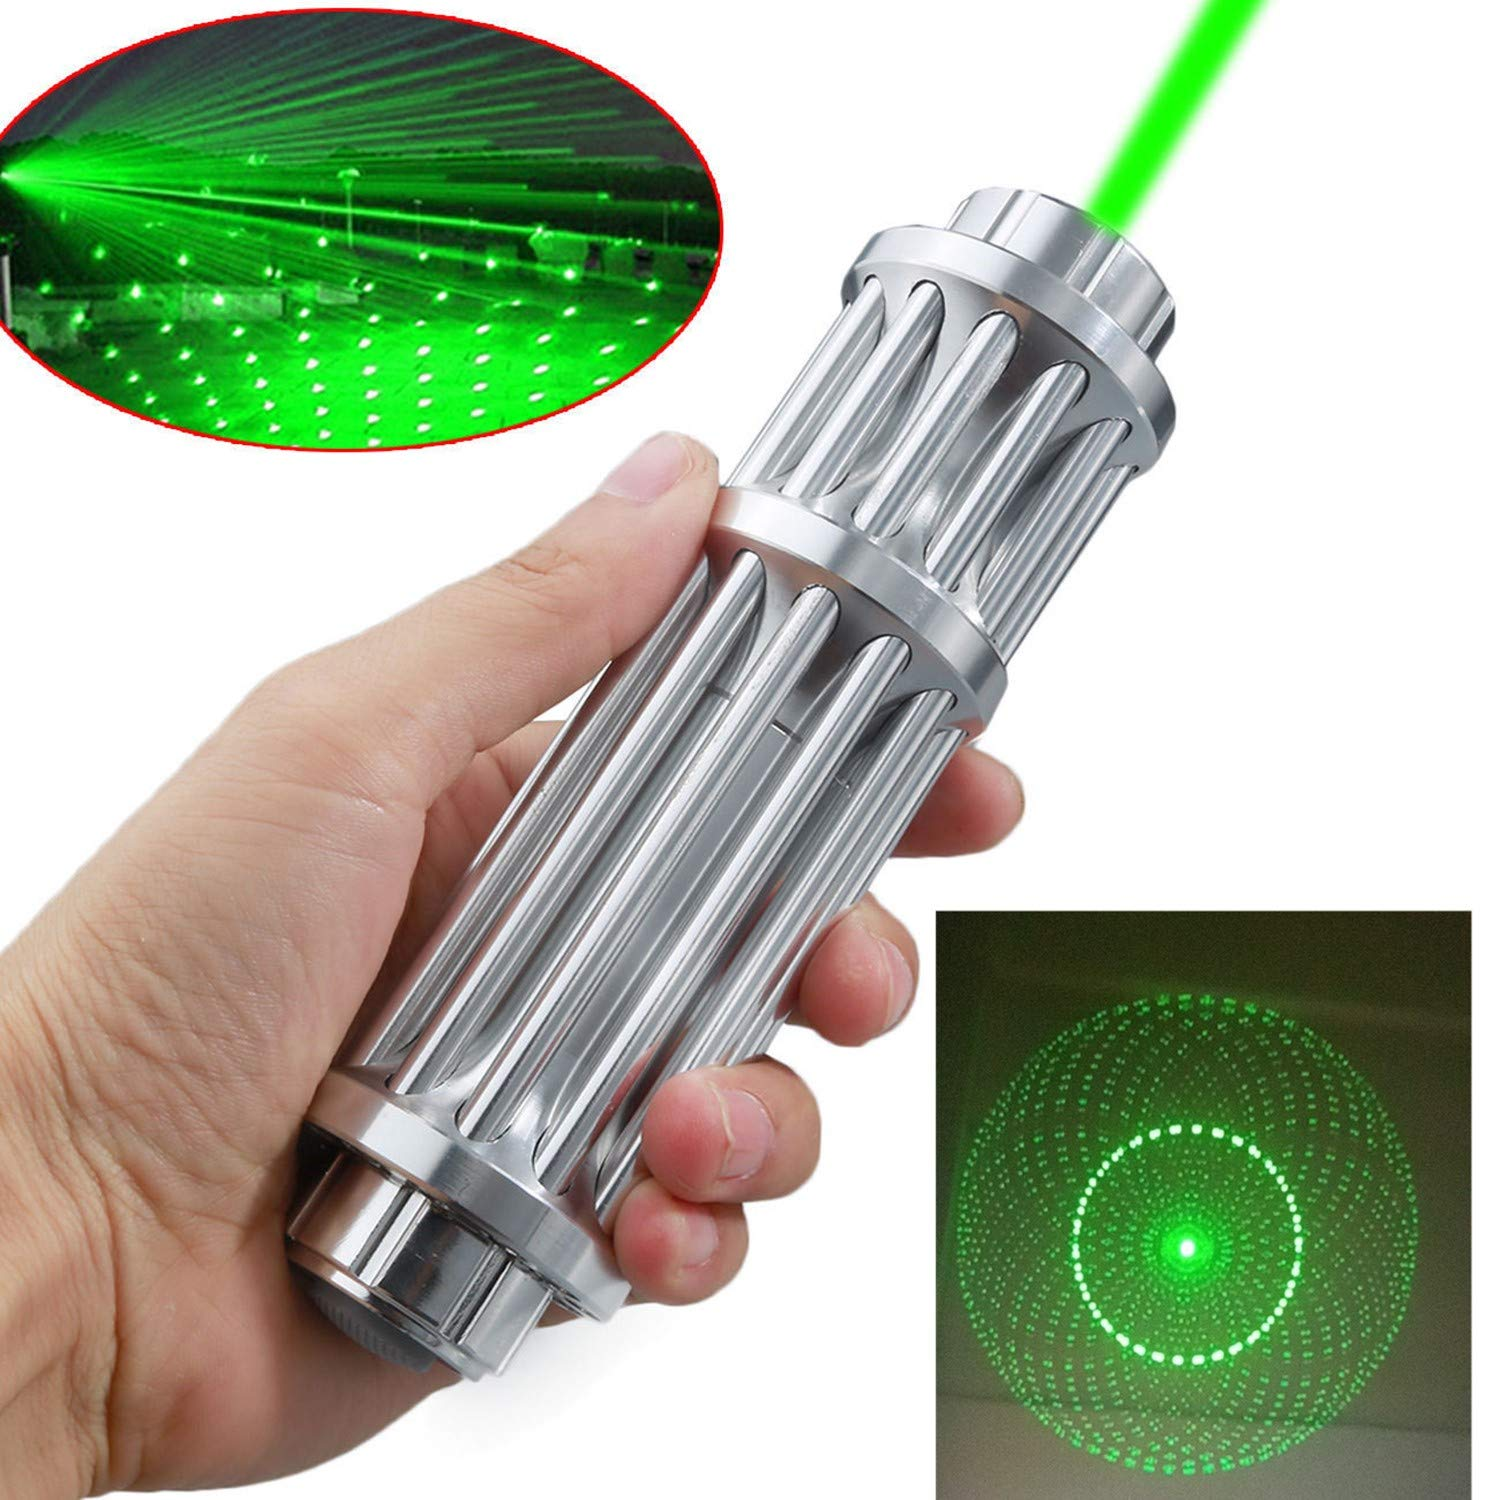 High Power Green Pointer Pen Tactical Hunting Sight Multi Function LED Travel Outdoor Flashlight Remote Control Projector Demonstrates Astronomy Hobby Teachers Teaching Sales Sand Table Indicator by Lodney laser flashlight